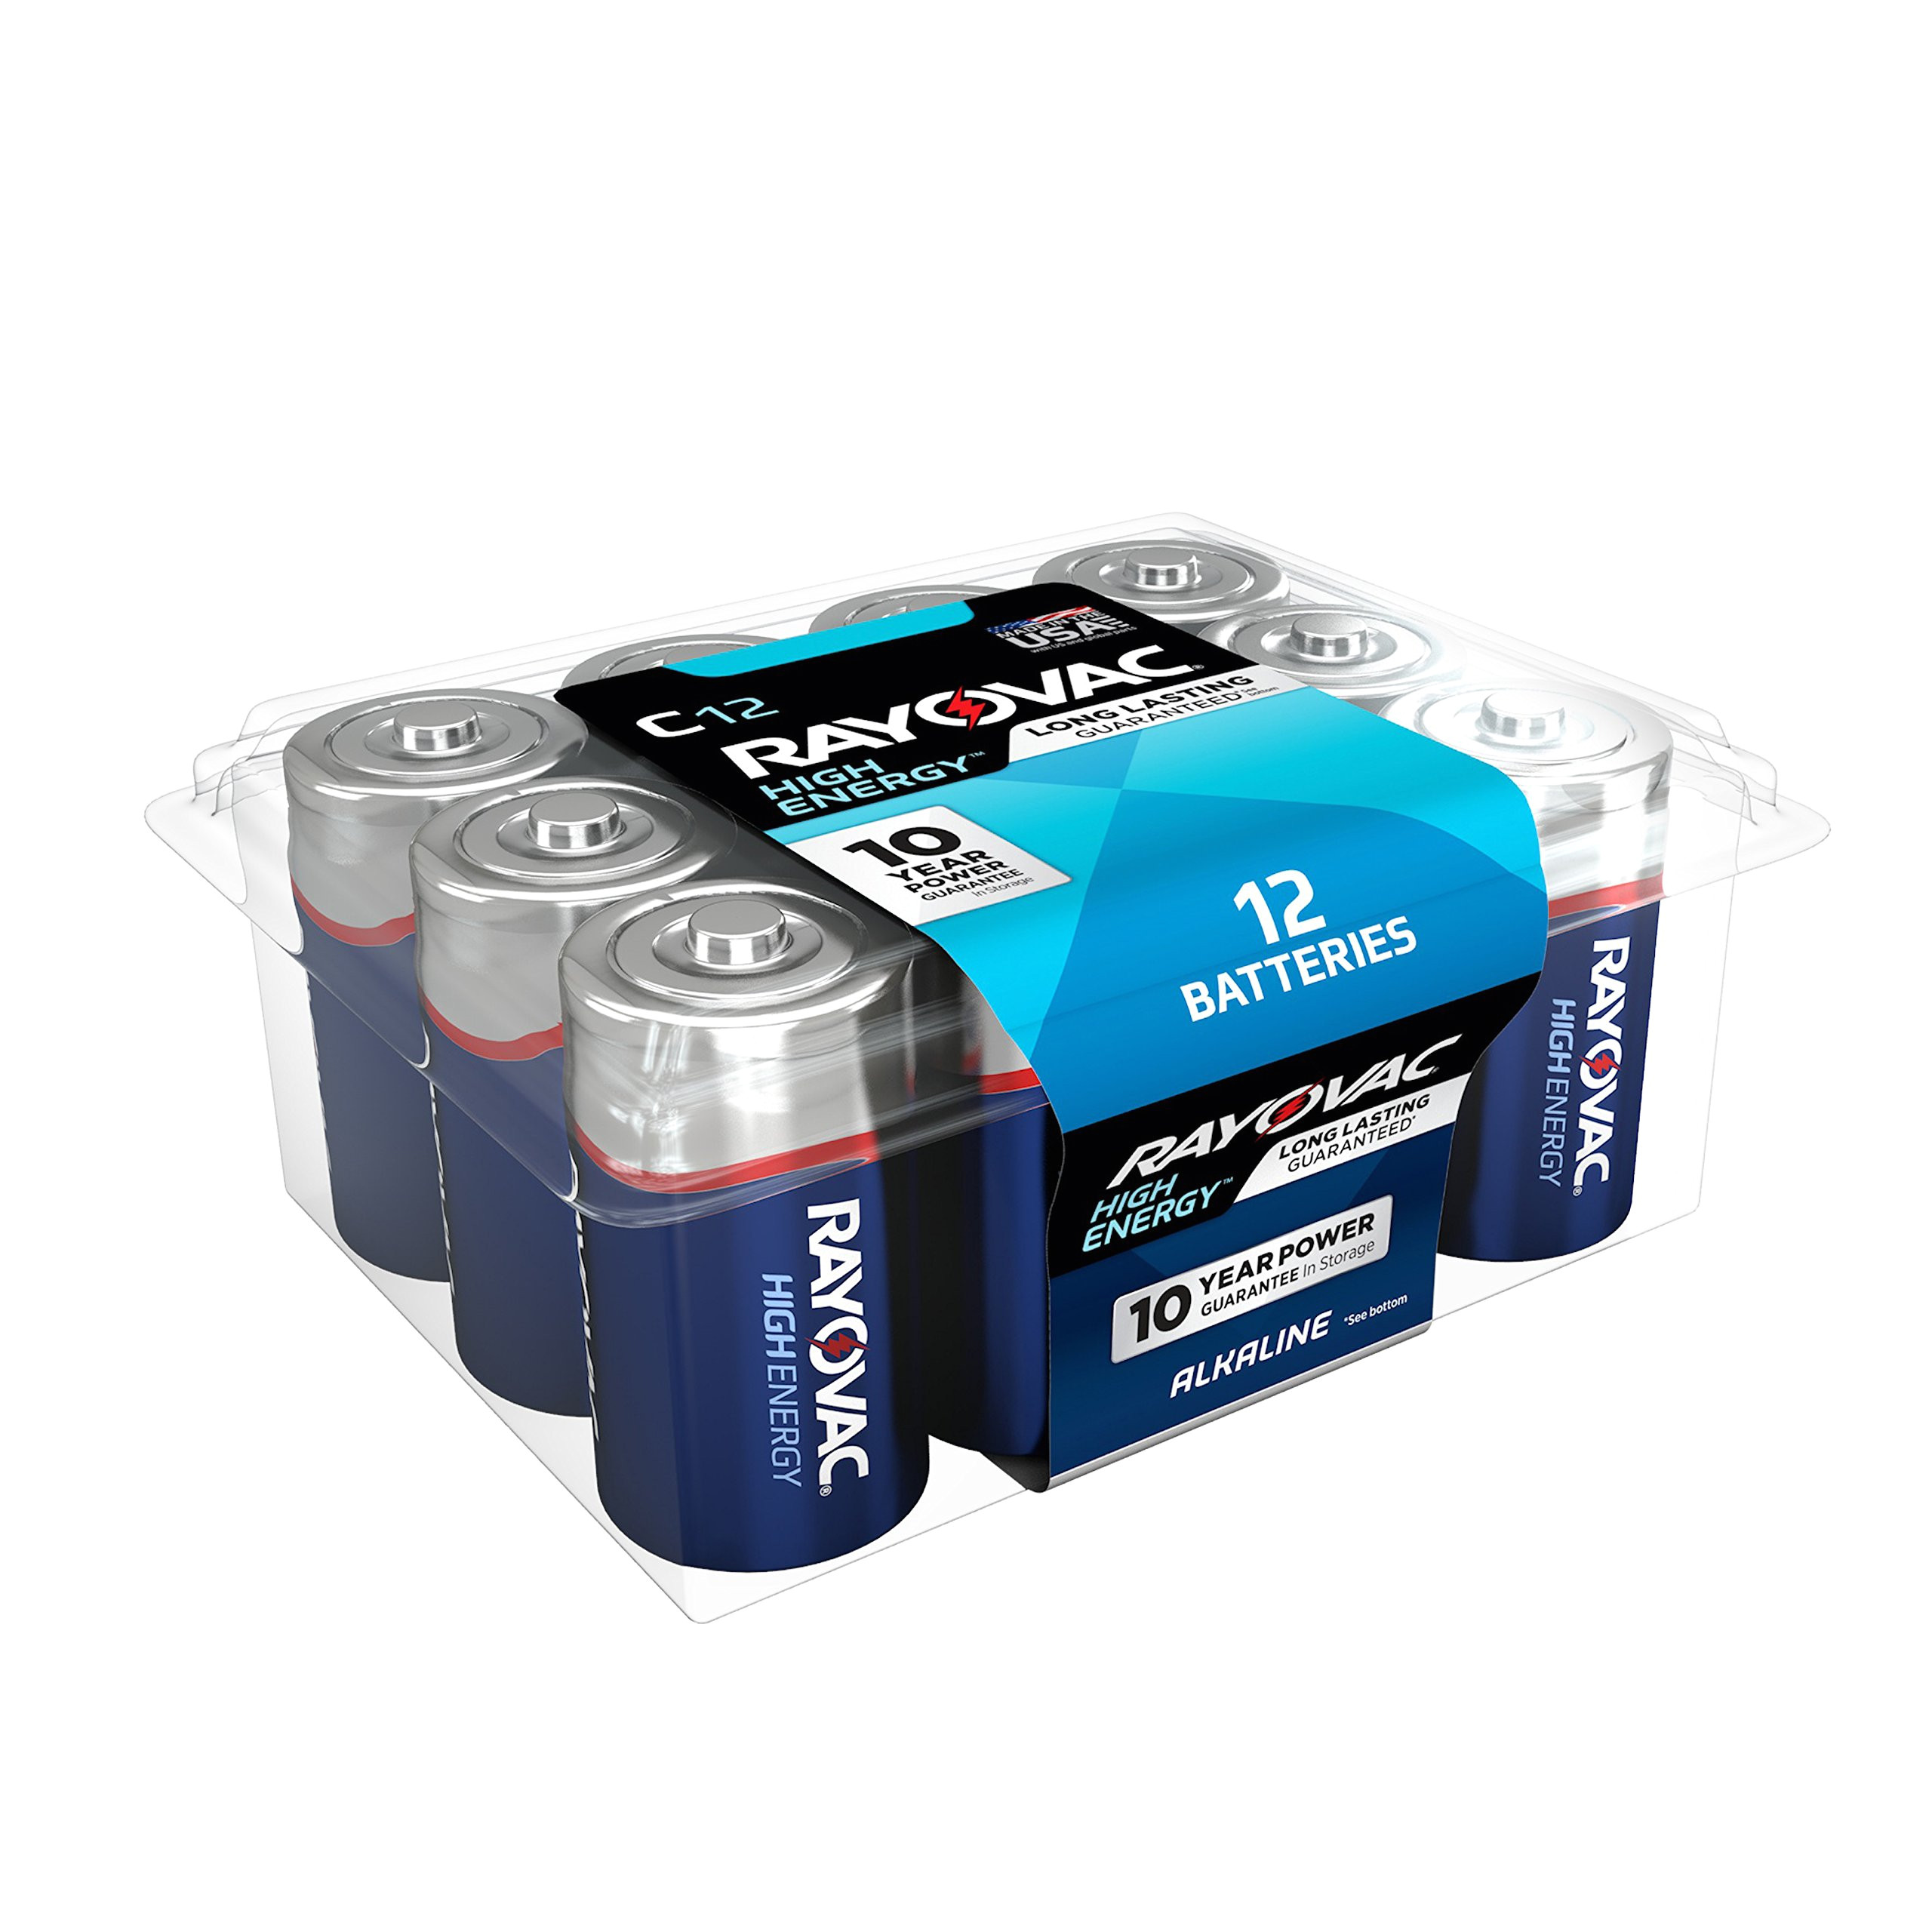 rayovac c batteries alkaline c cell batteries 12 battery count product image